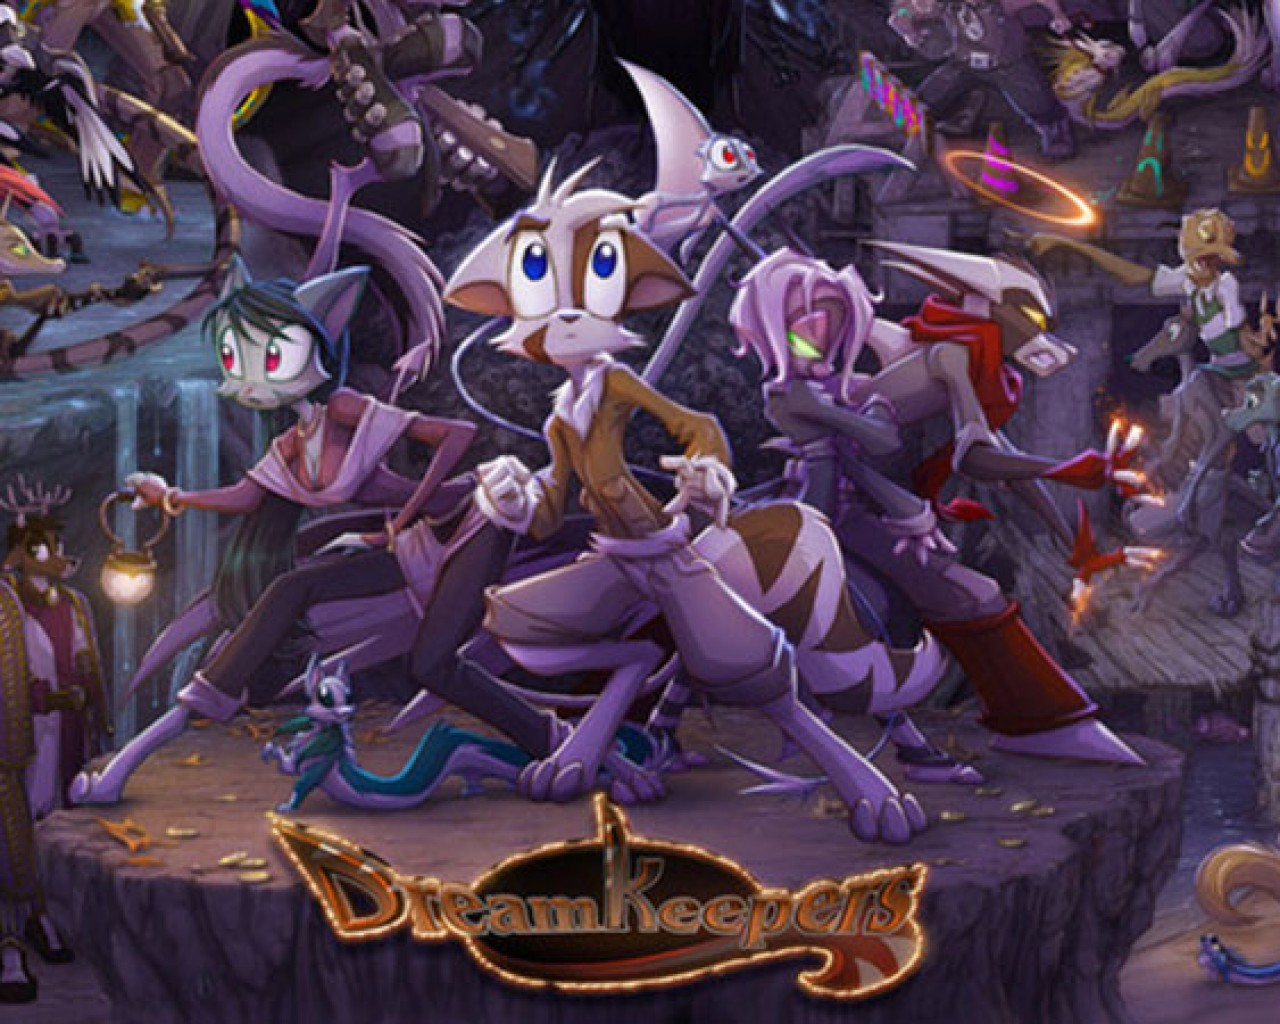 Poster Image for Dreamkeepers